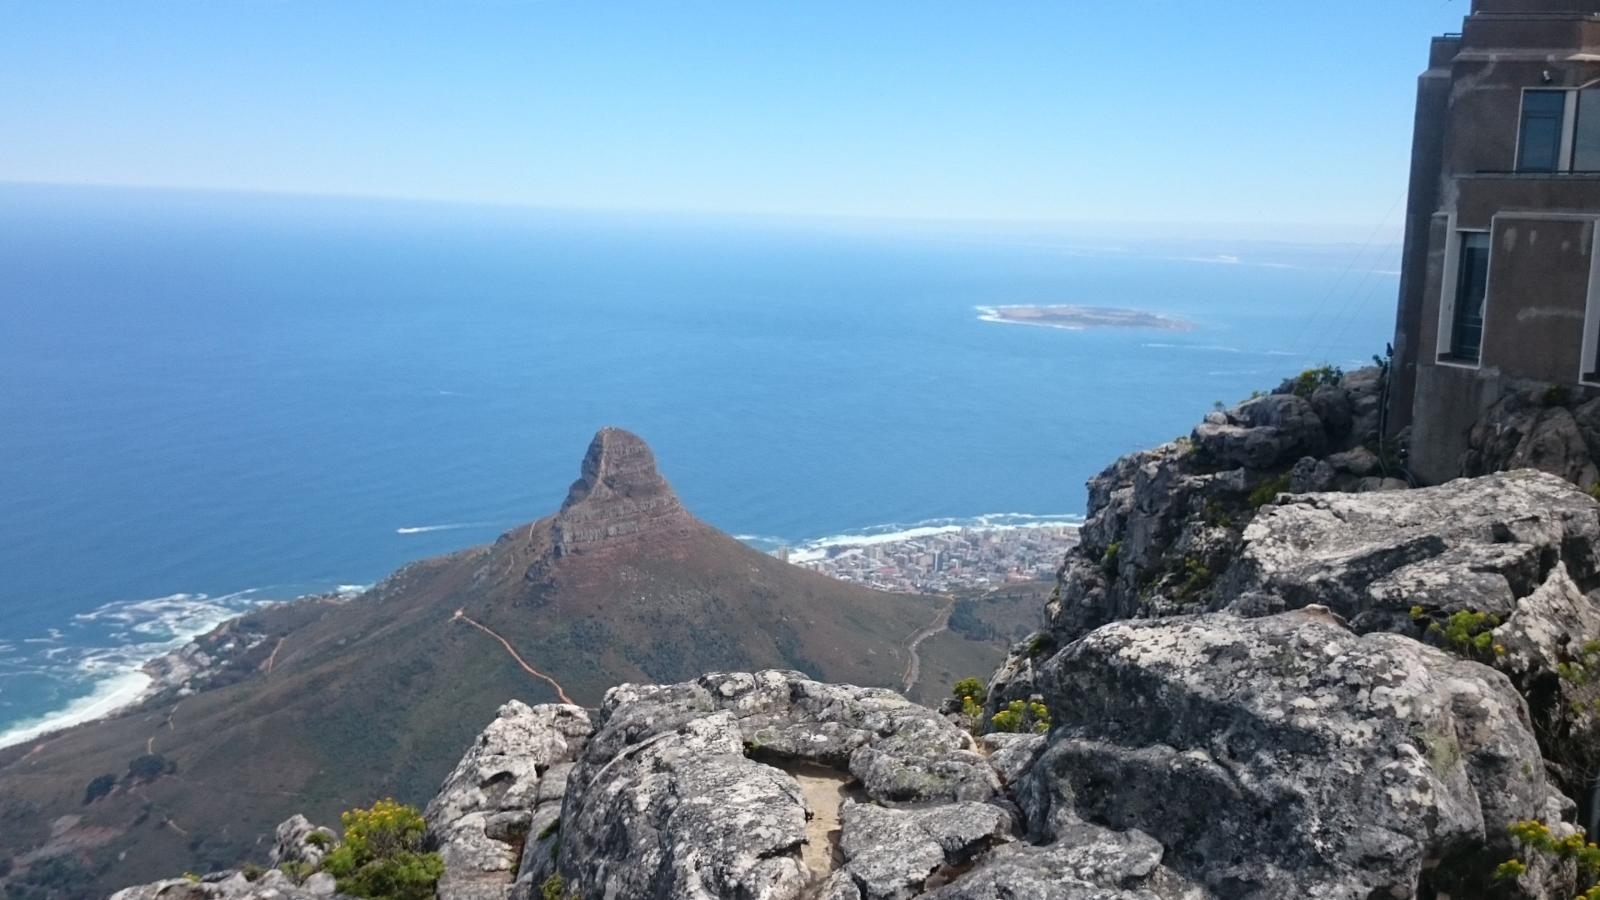 Photo of Table Mountain via Platteklip Gorge